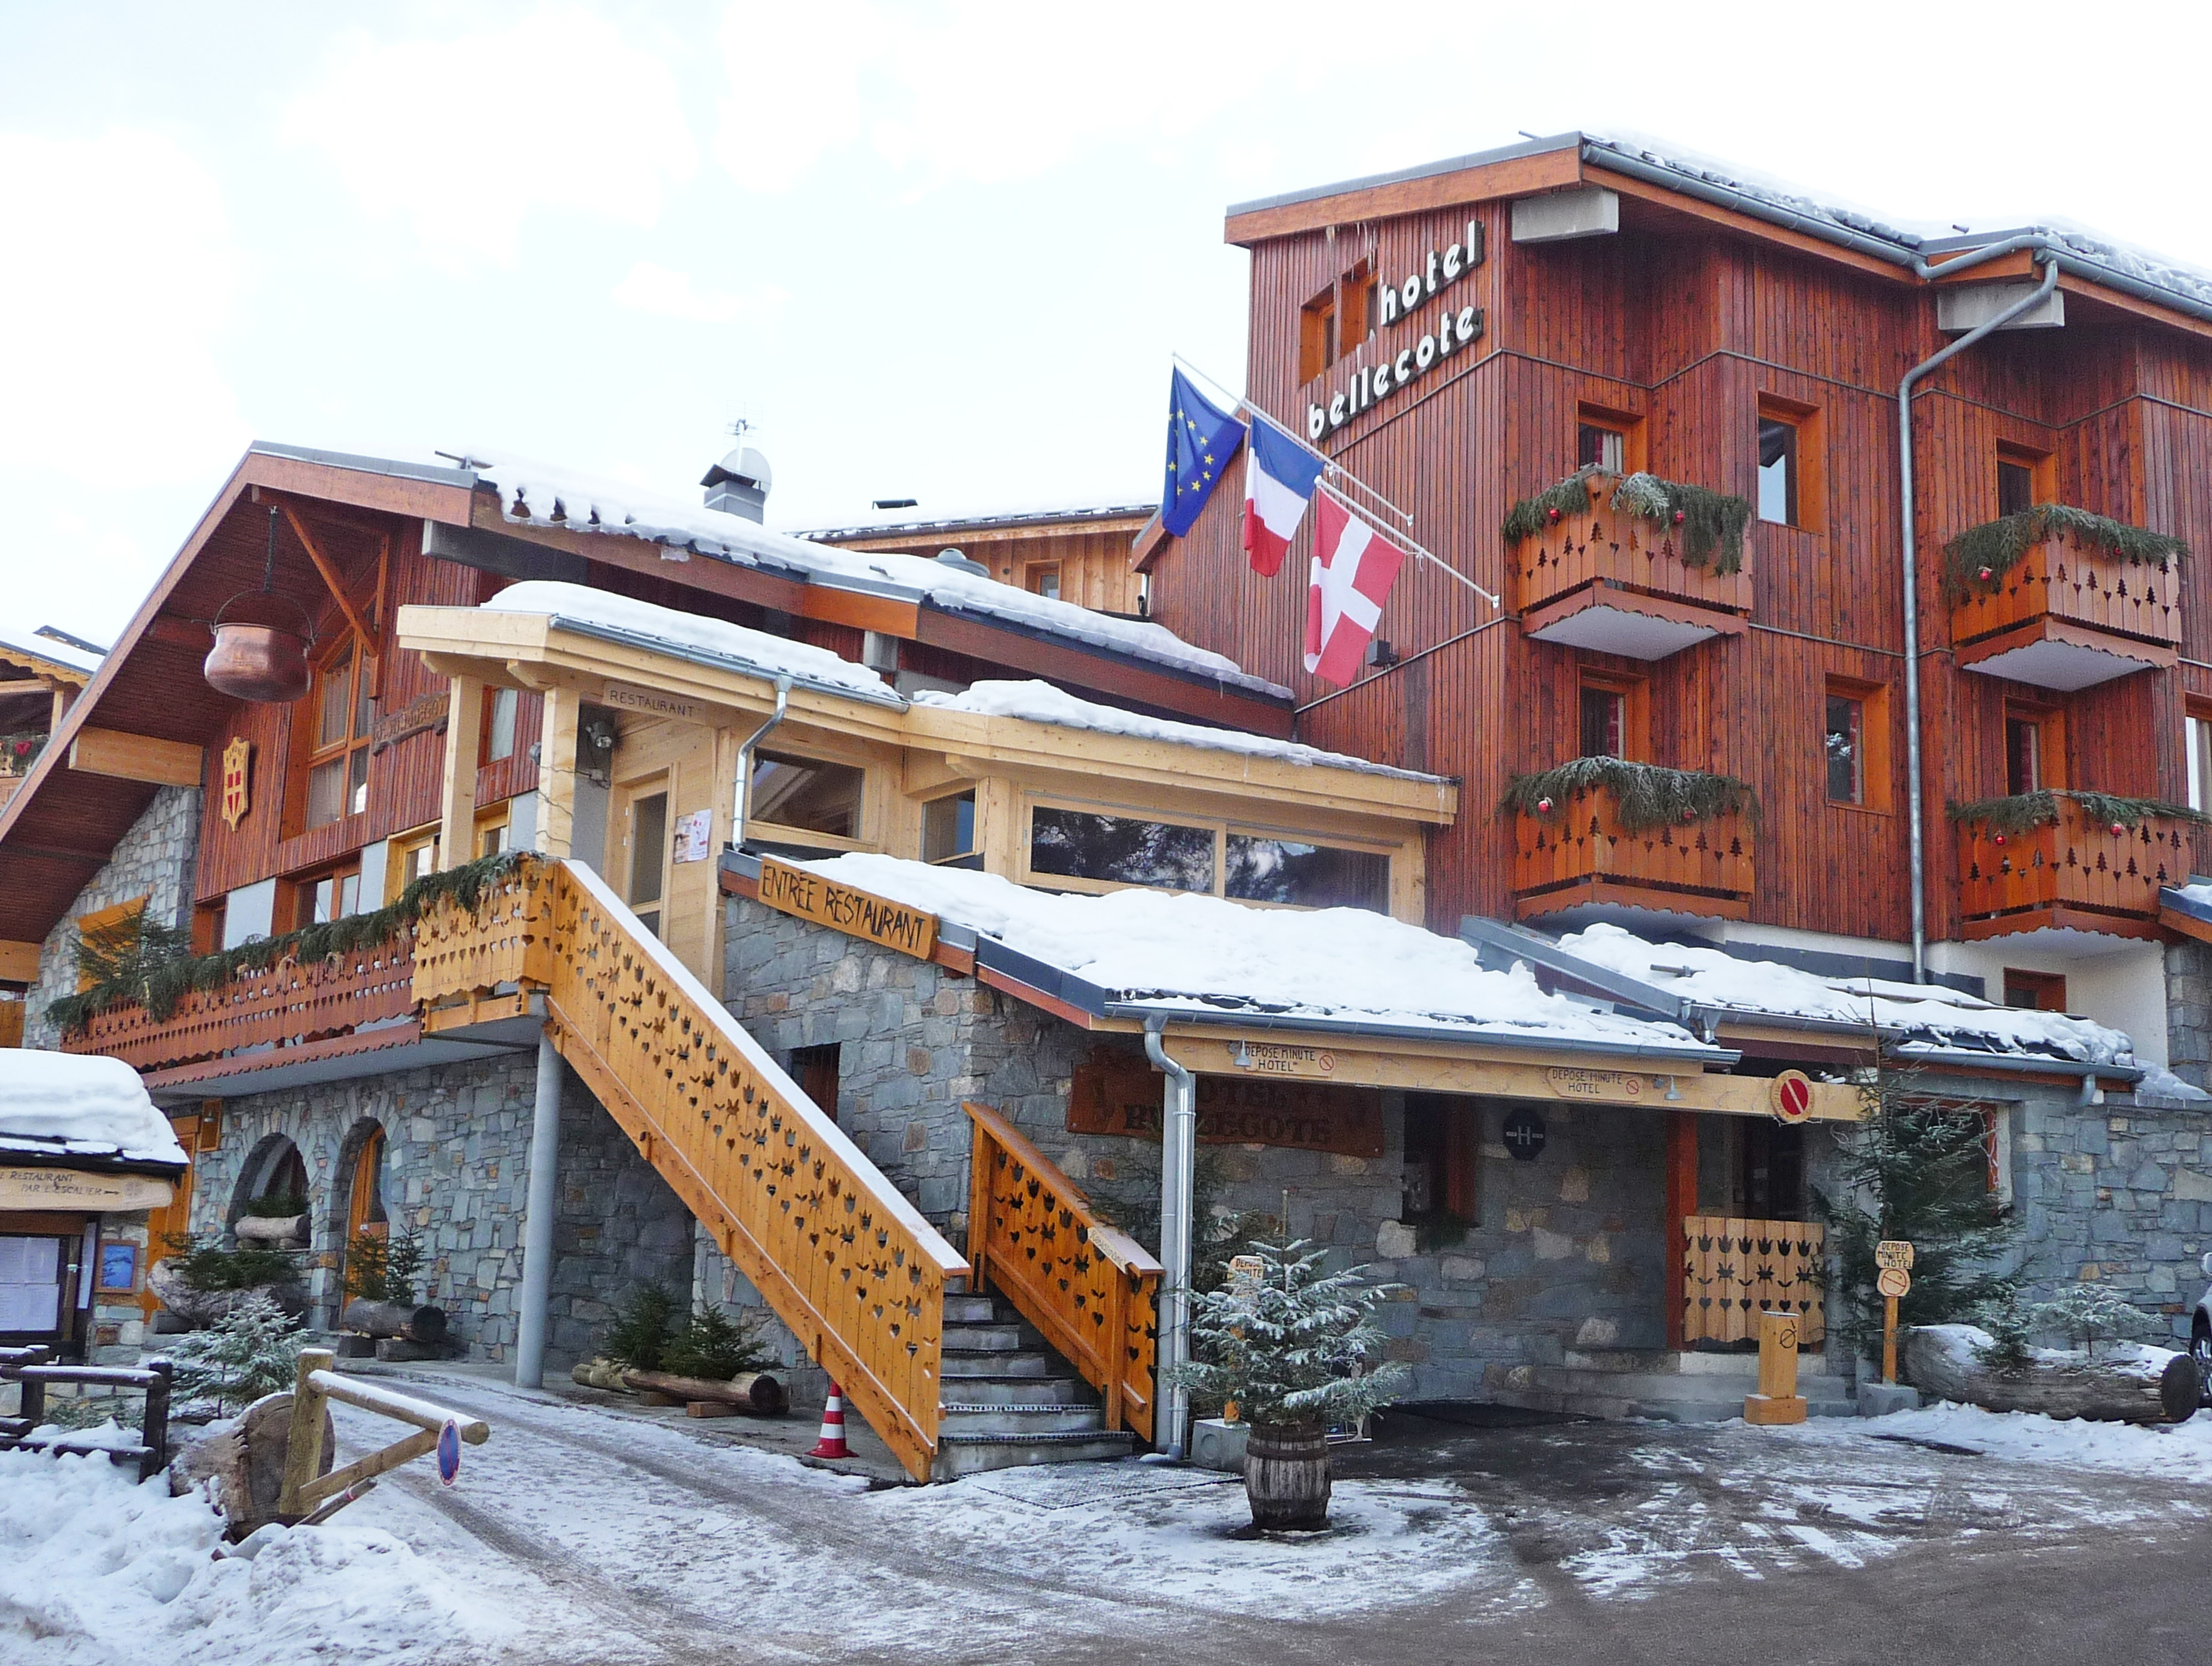 Hotel Bellecote Montchavin Ski Accommodation Peak Retreats